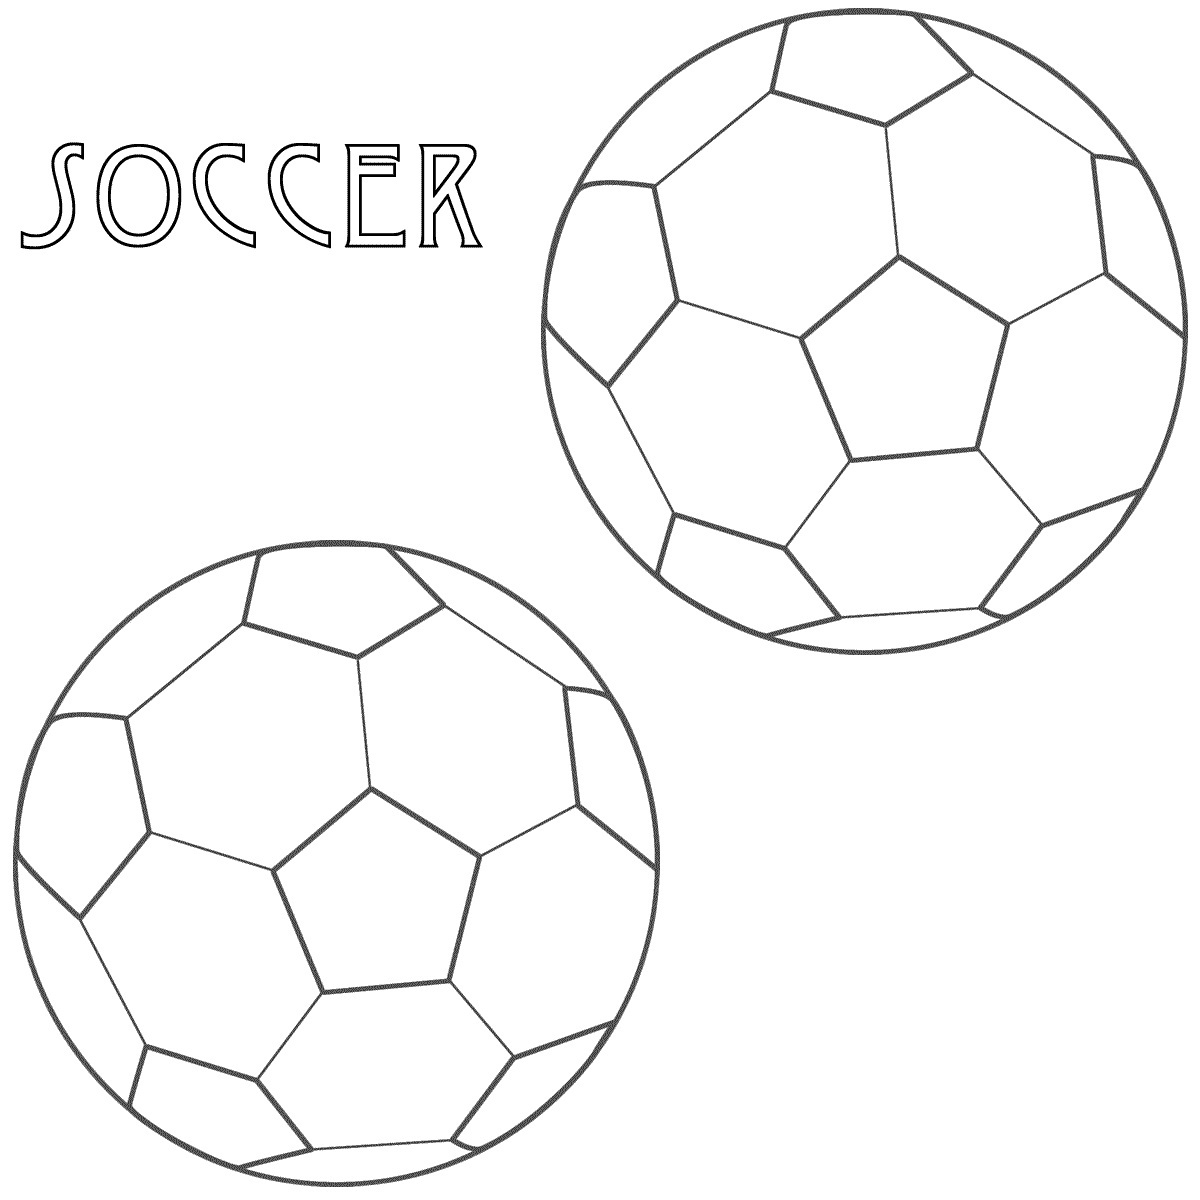 Free printable coloring pages soccer - Soccer Coloring Page